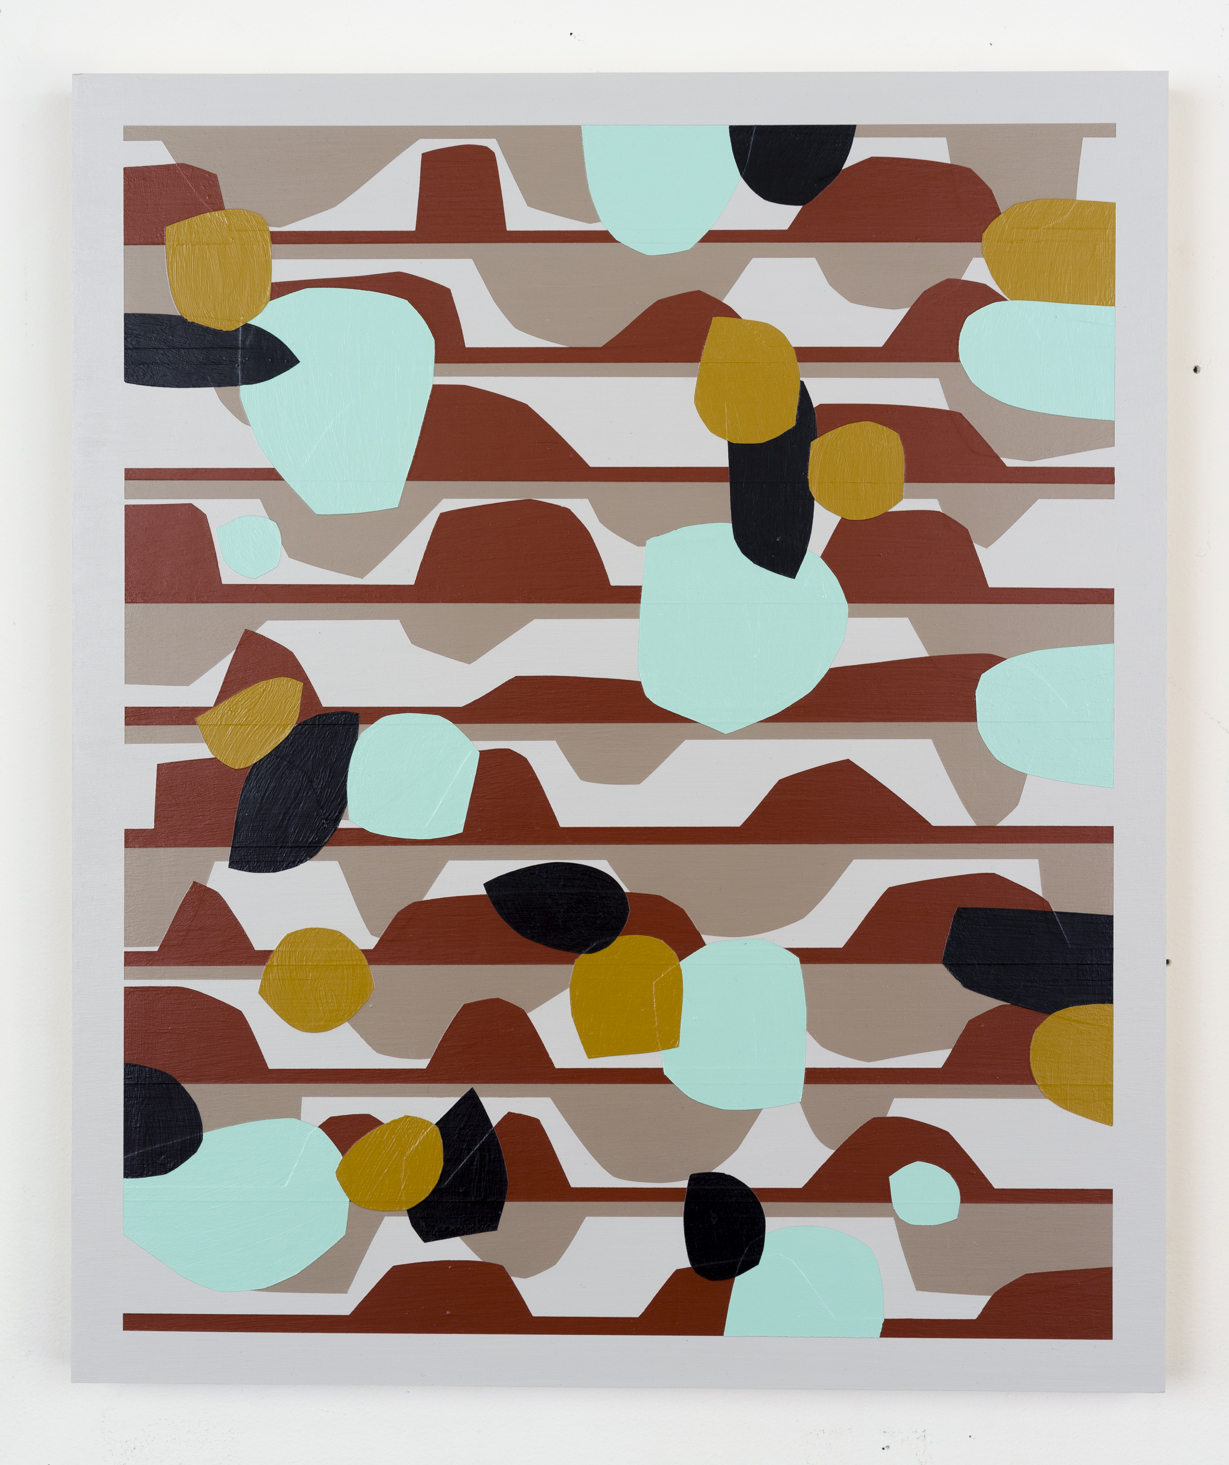 Nick Jaskey   Untitled 4  , 2015   House paint on wood panel  24 x 24""